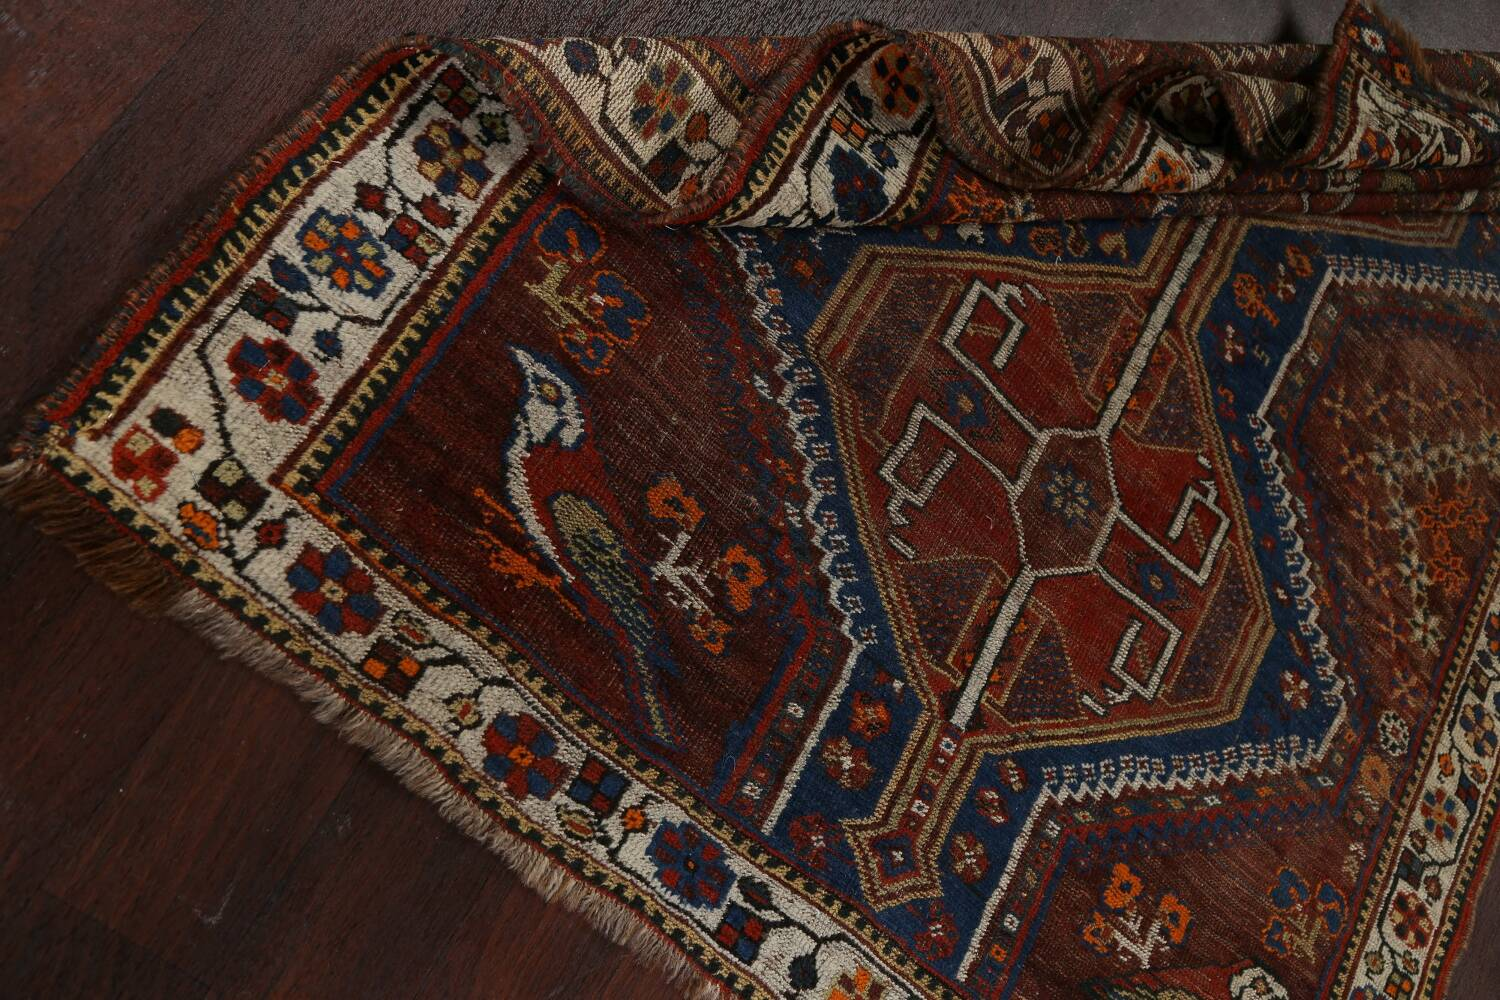 Pre-1900 Antique Ghashghaie Persian Area Rug 5x6 image 19